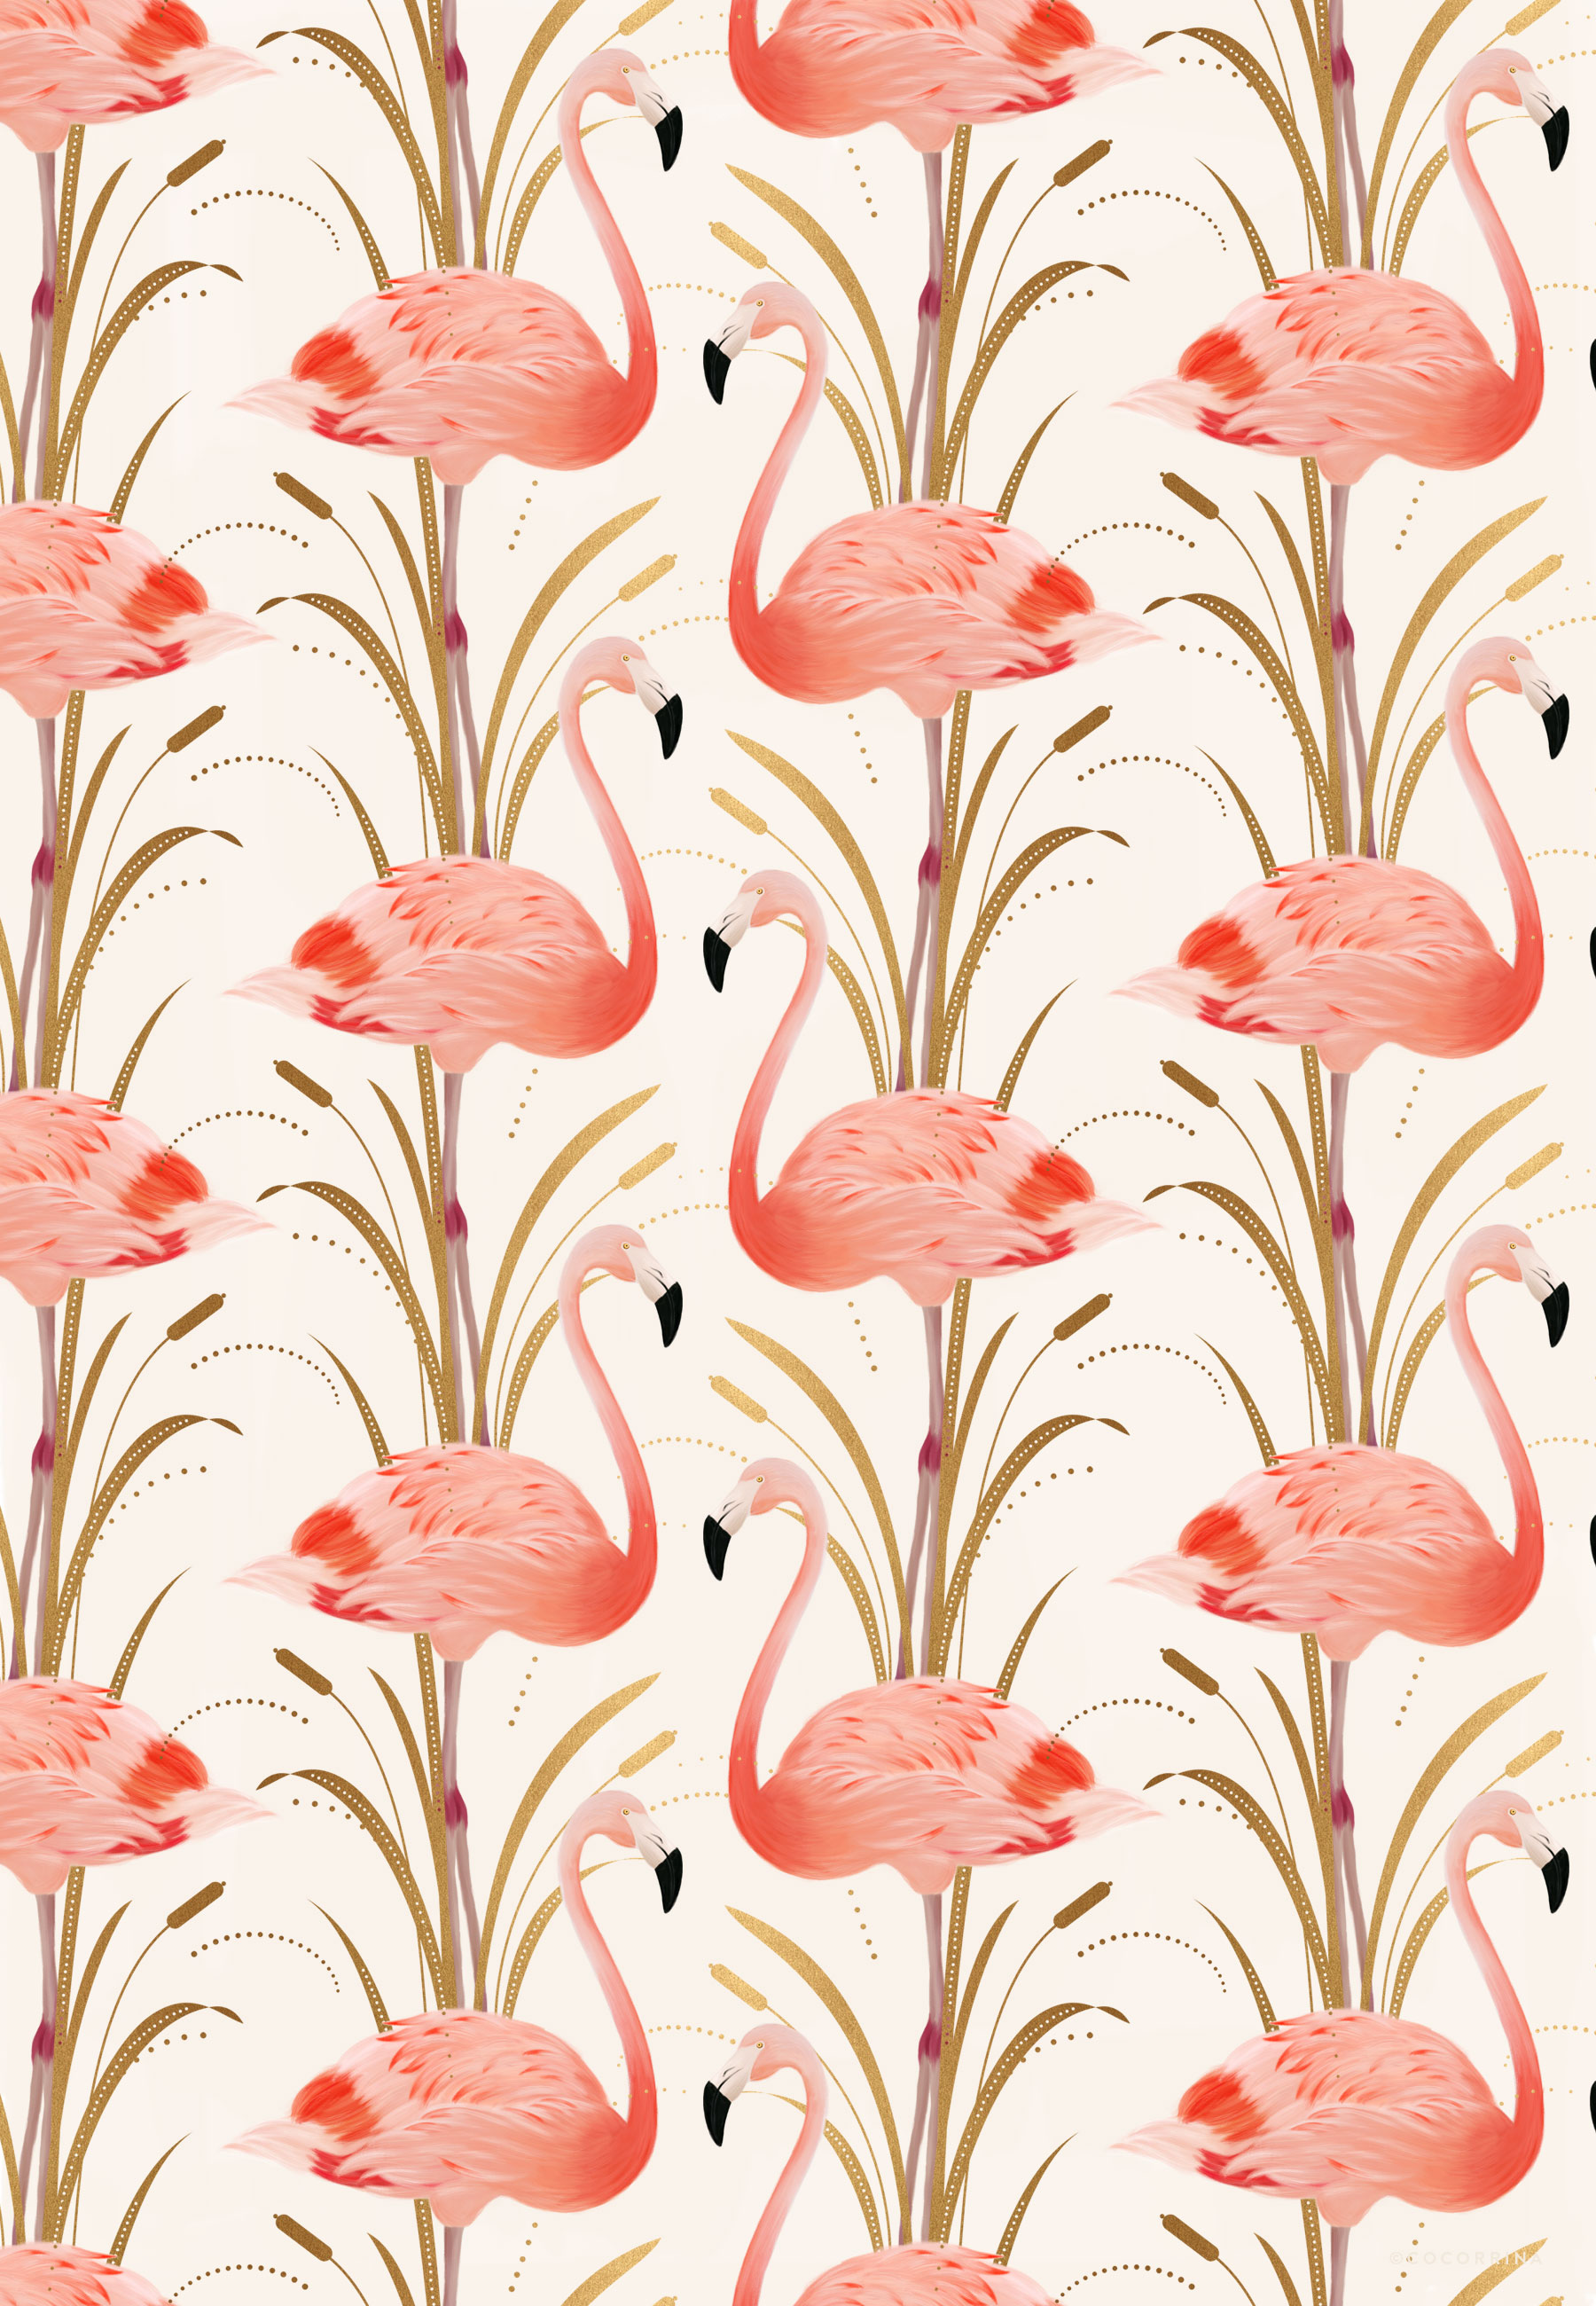 Flamingo-pattern-Illustration-by-Cocorrina-wallpaper-wp4406979